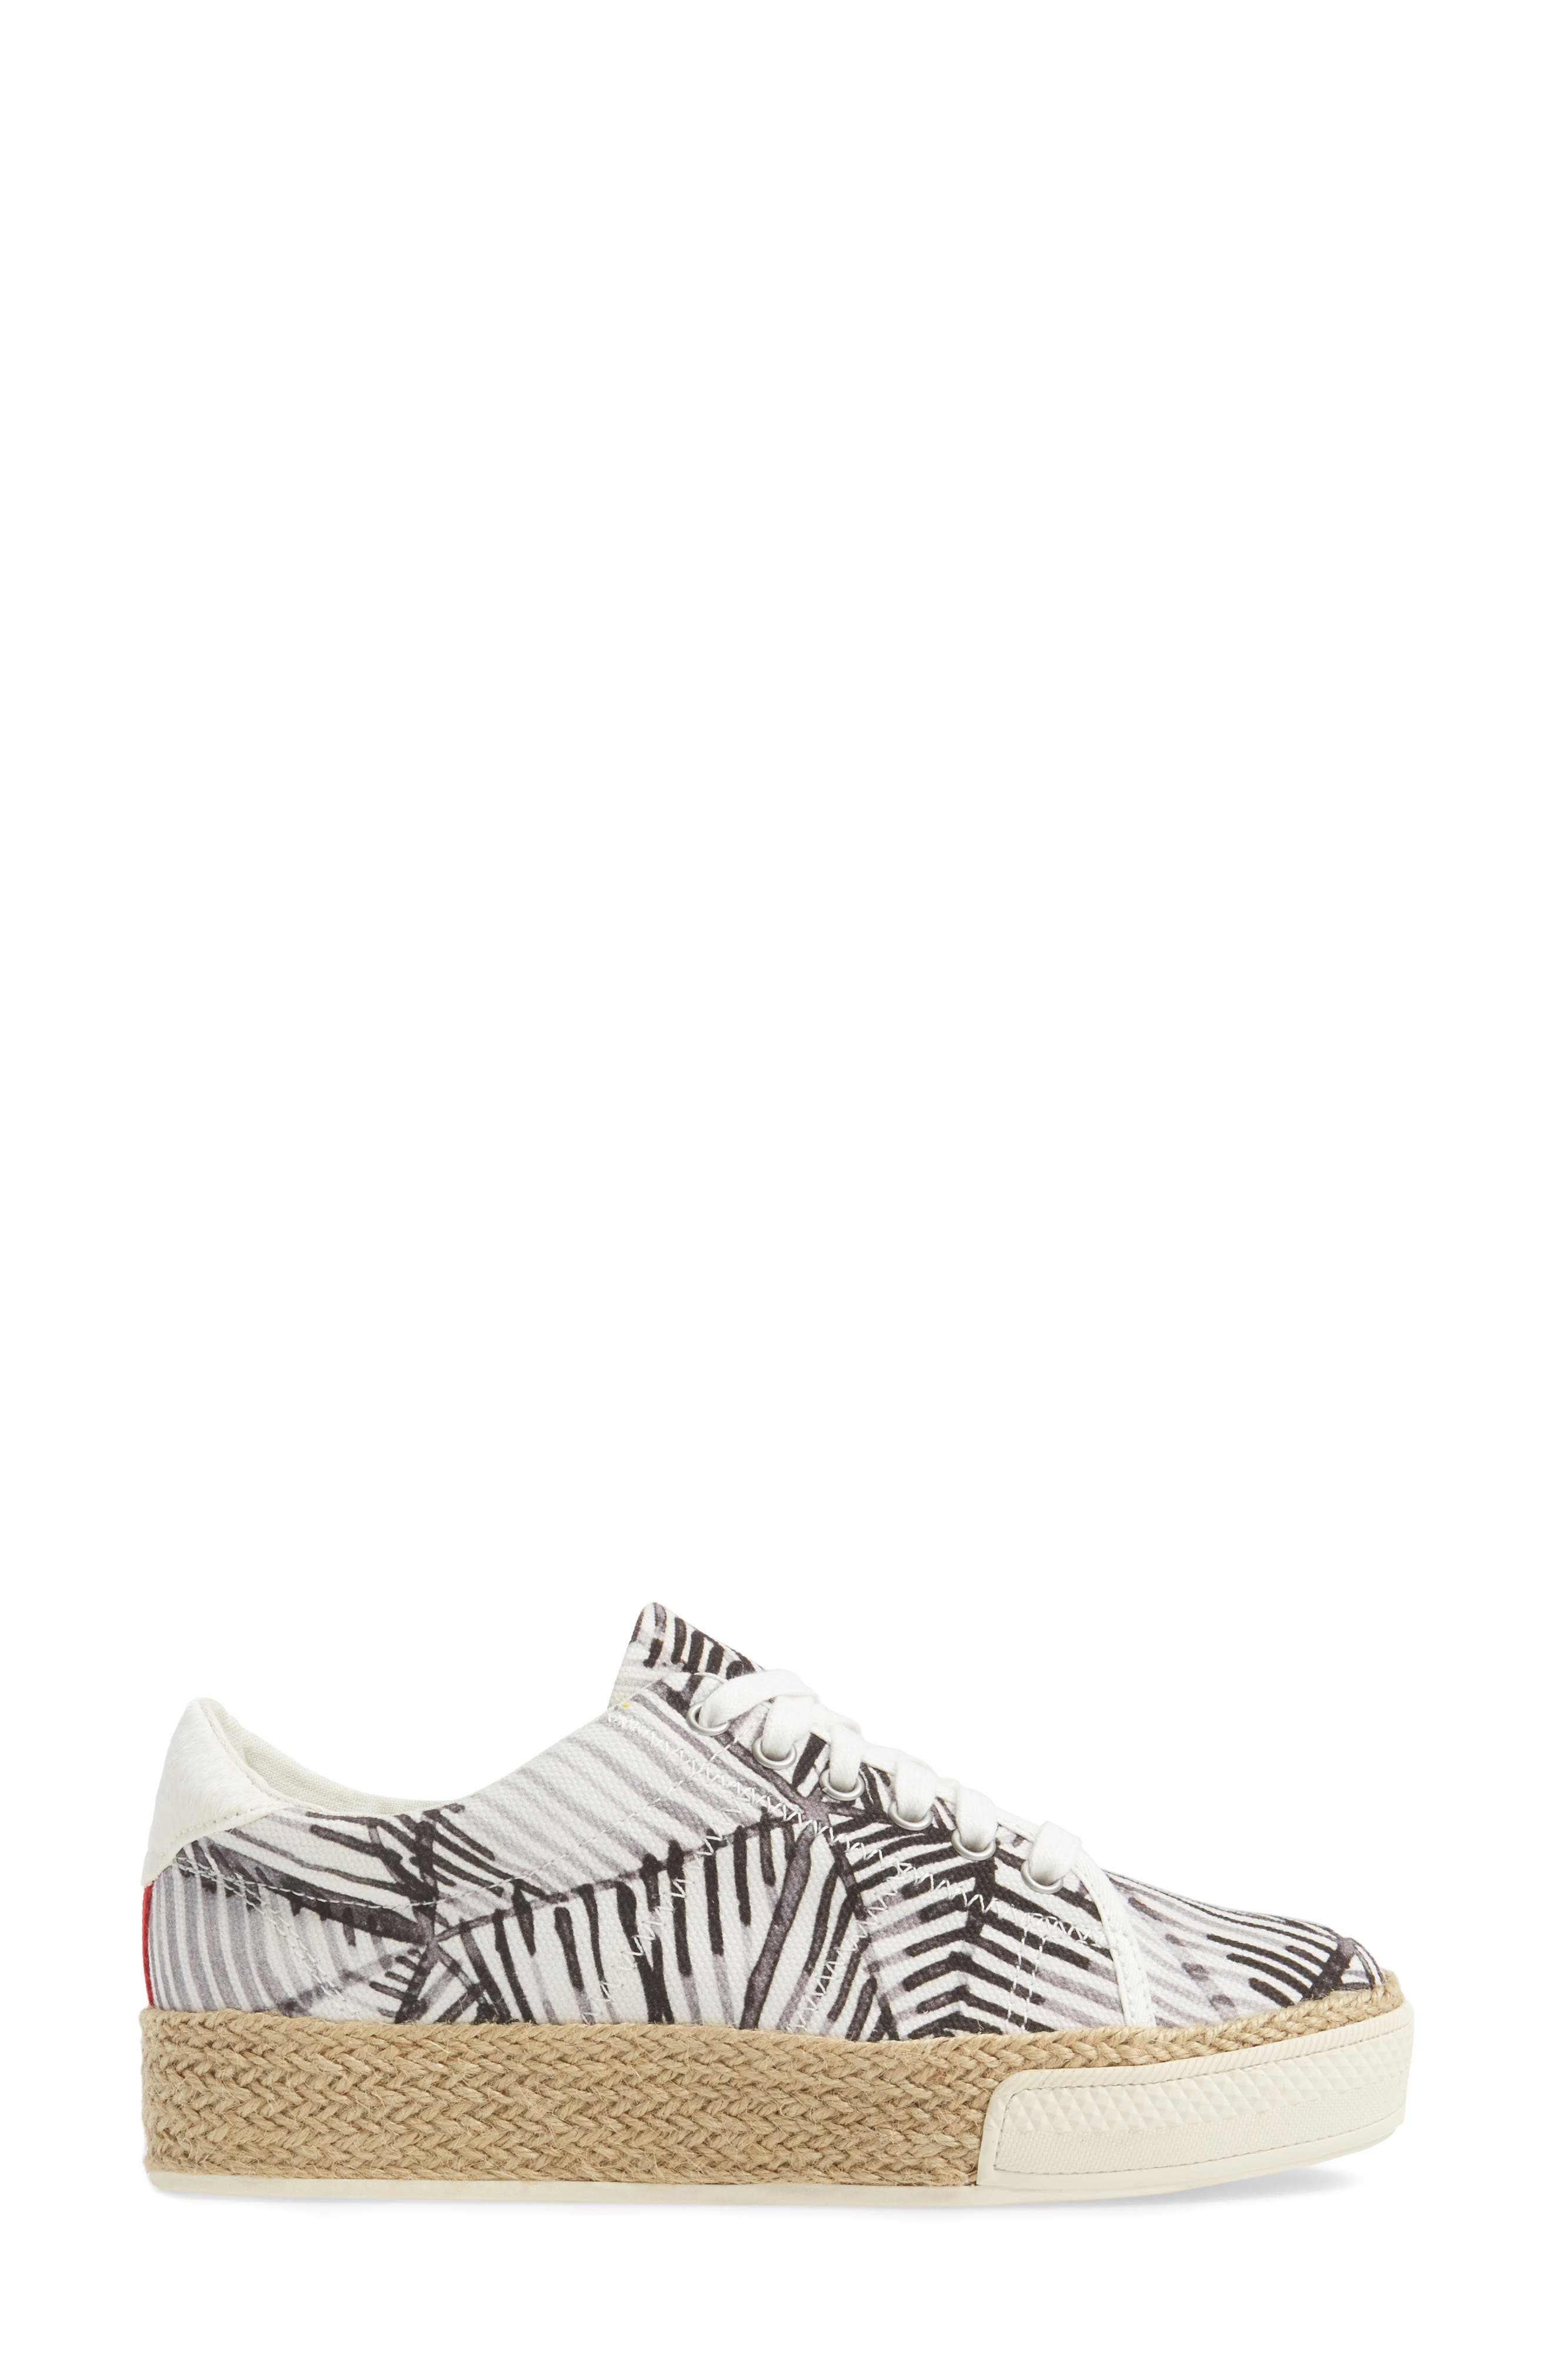 Tala Platform Sneaker,                             Alternate thumbnail 3, color,                             100